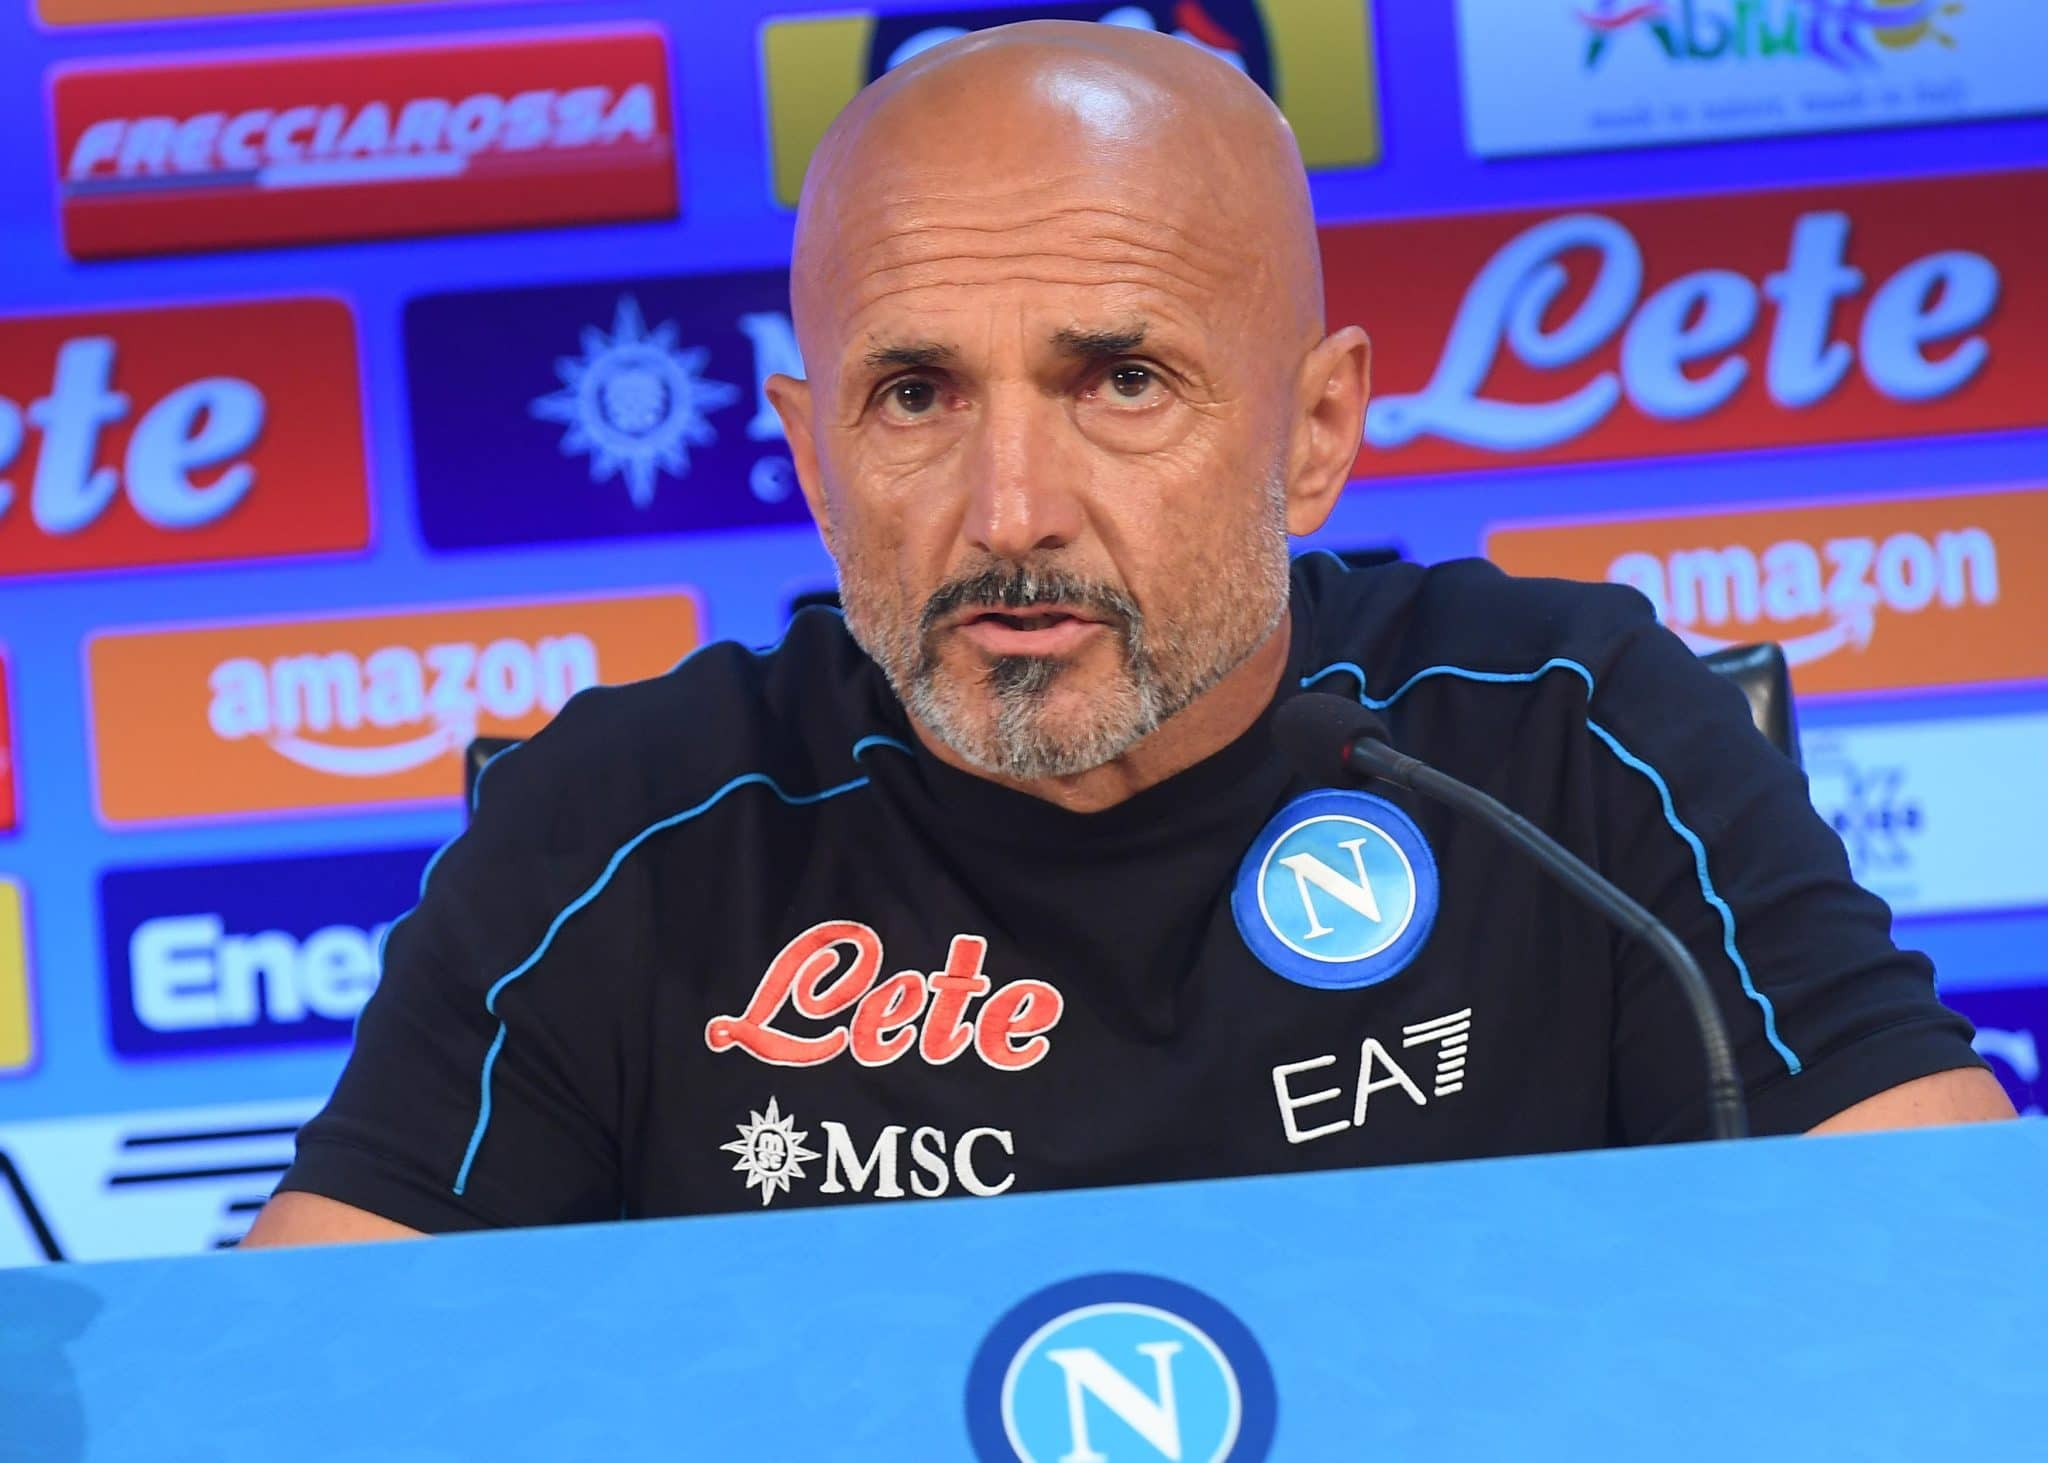 NAPLES, ITALY - SEPTEMBER 25: Luciano Spalletti speaks at a press conference on September 25, 2021 in Naples, Italy. (Photo by SSC NAPOLI/SSC NAPOLI via Getty Images)